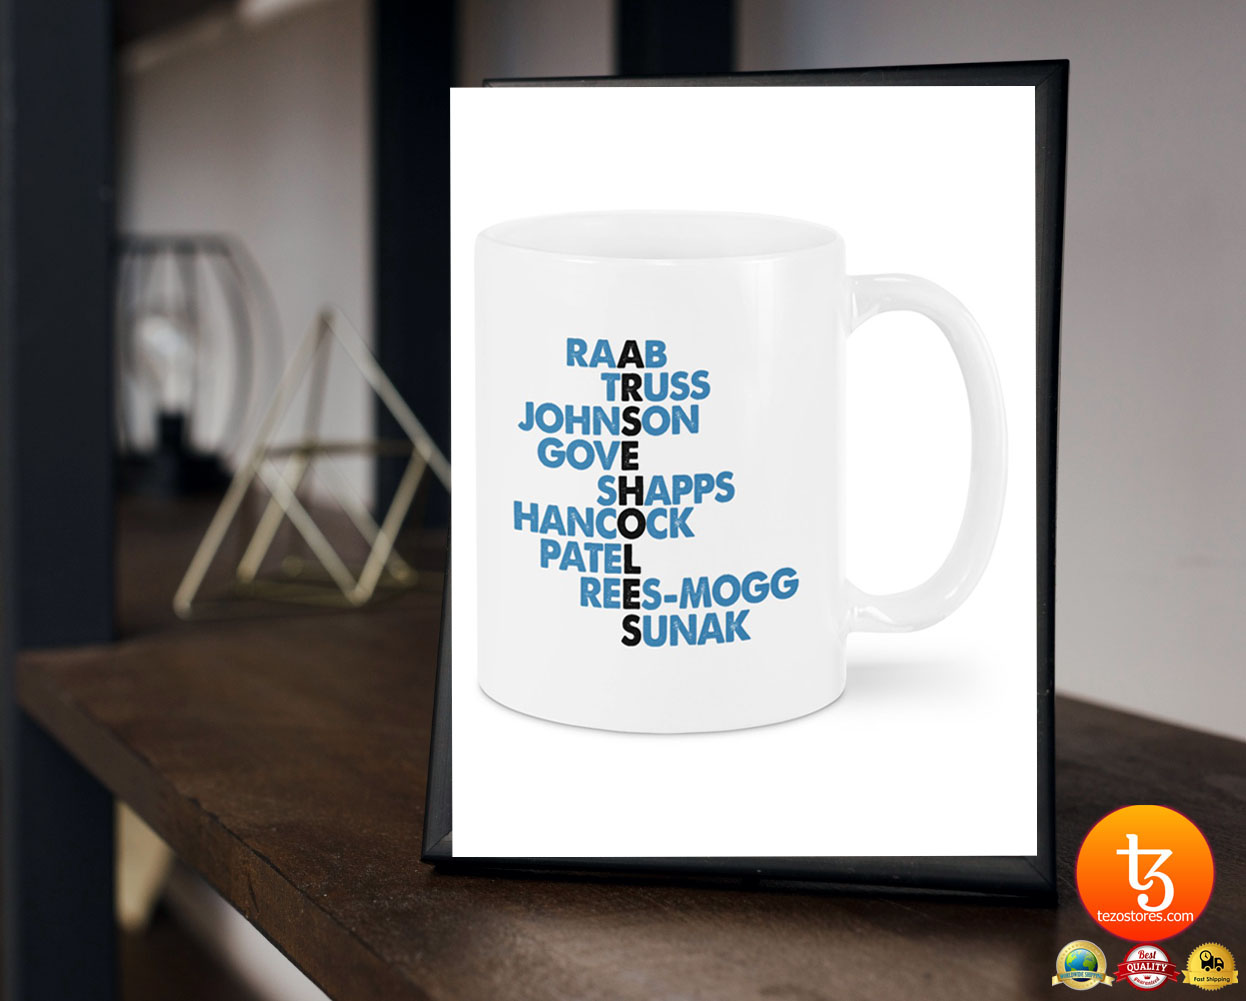 Raab truss johnson gove shapps mug